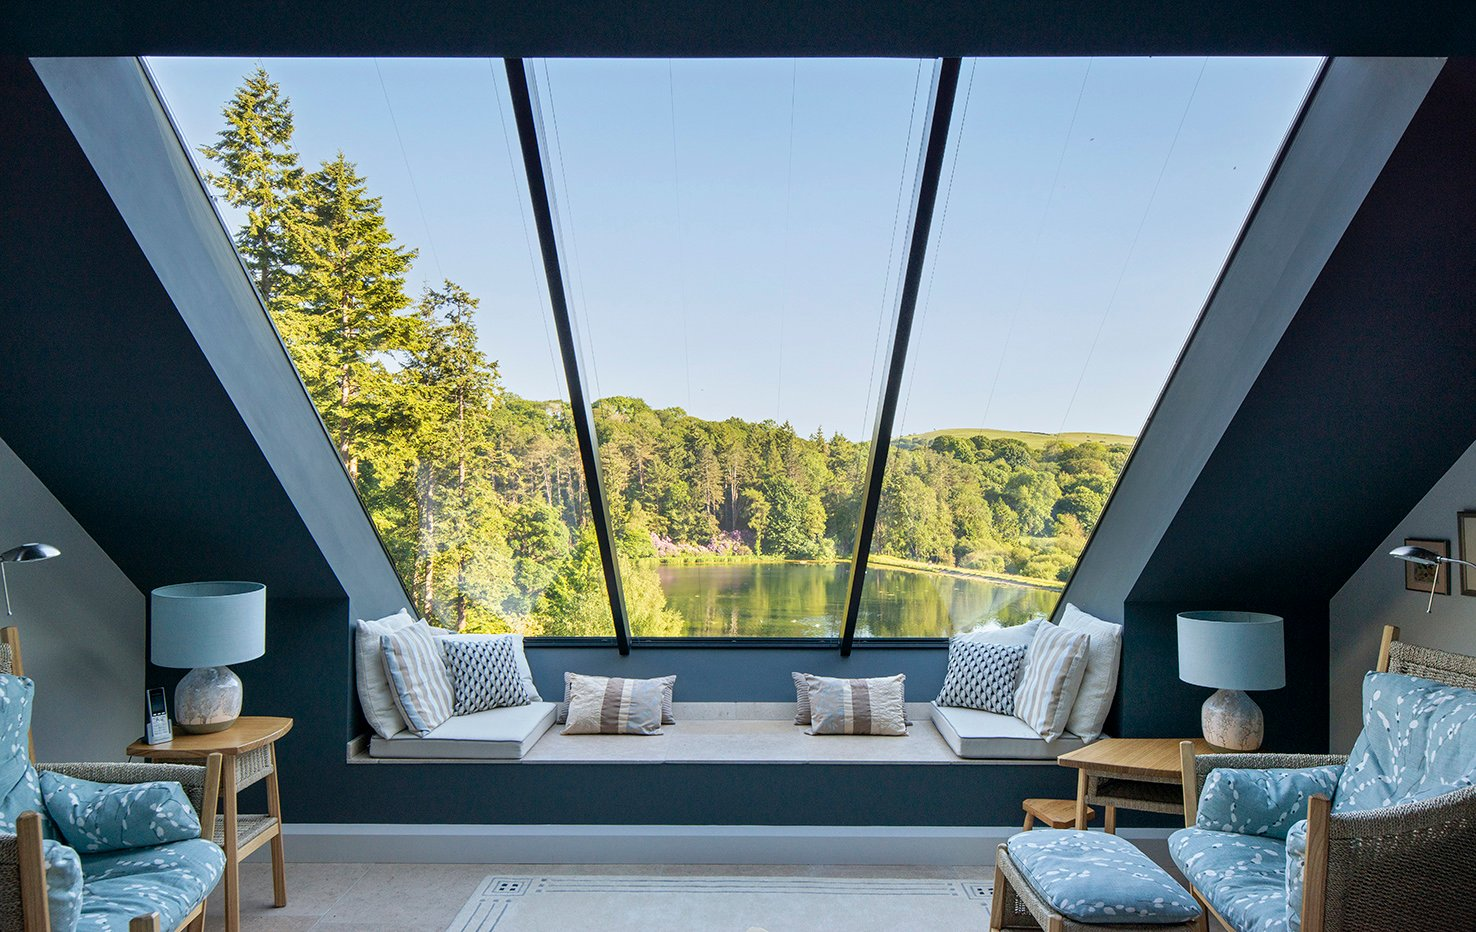 Wales-Cero-ODC300-Rooflights-Curtain-Wall_9